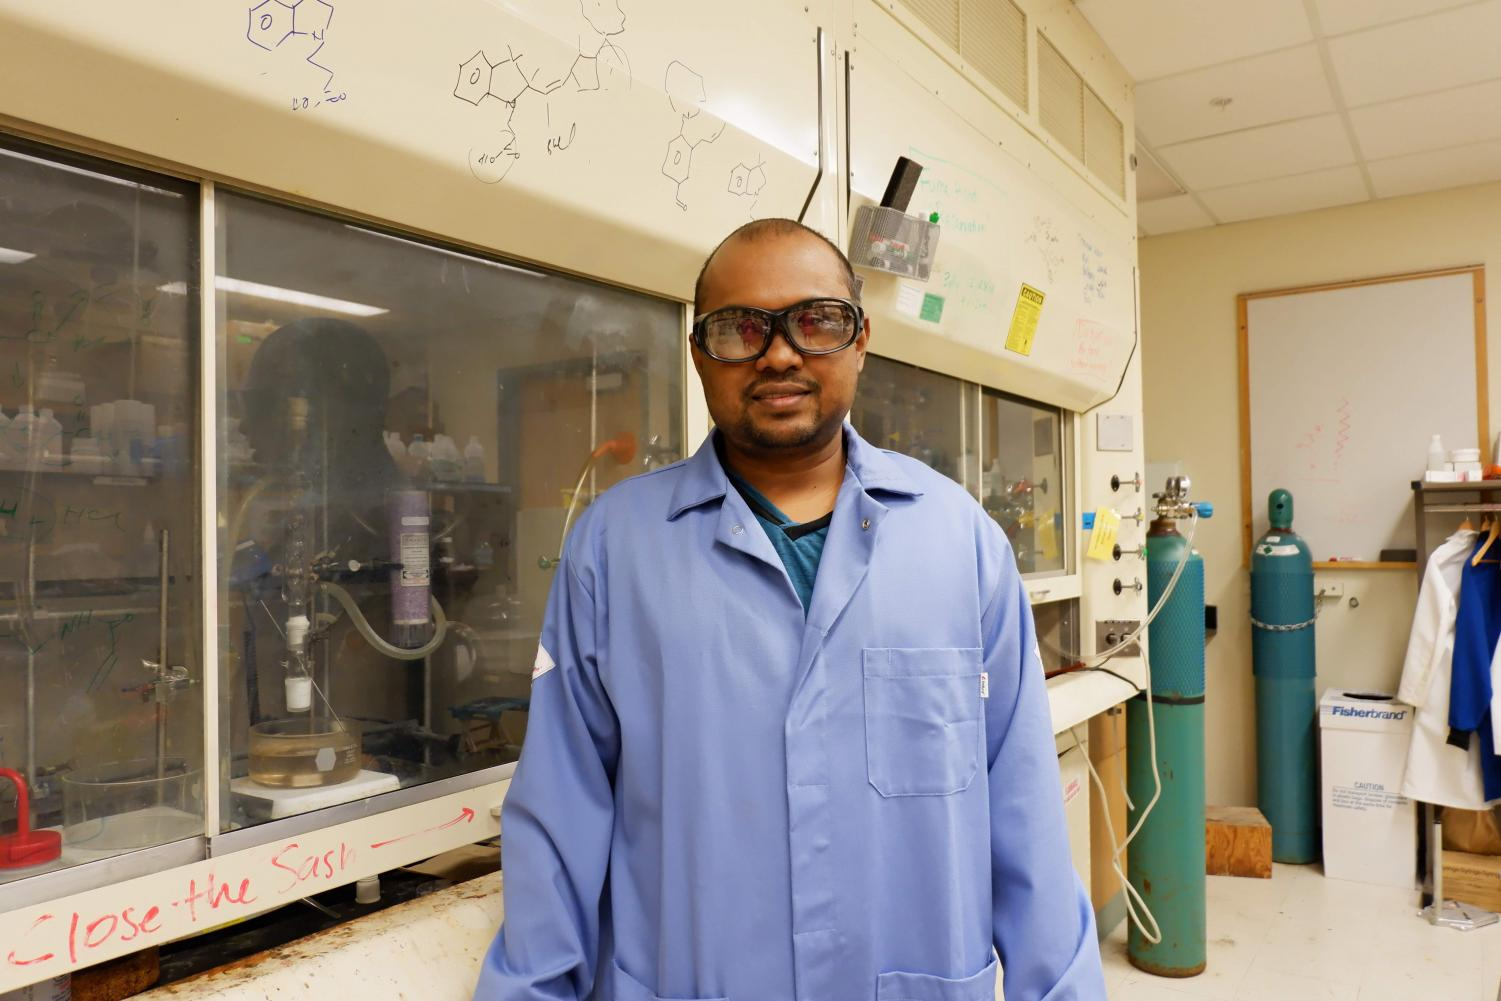 Mohammad Amdad Ali in his lab at the Beckman Institute on Monday. Ali is a postdoctoral researcher working on the sensor.